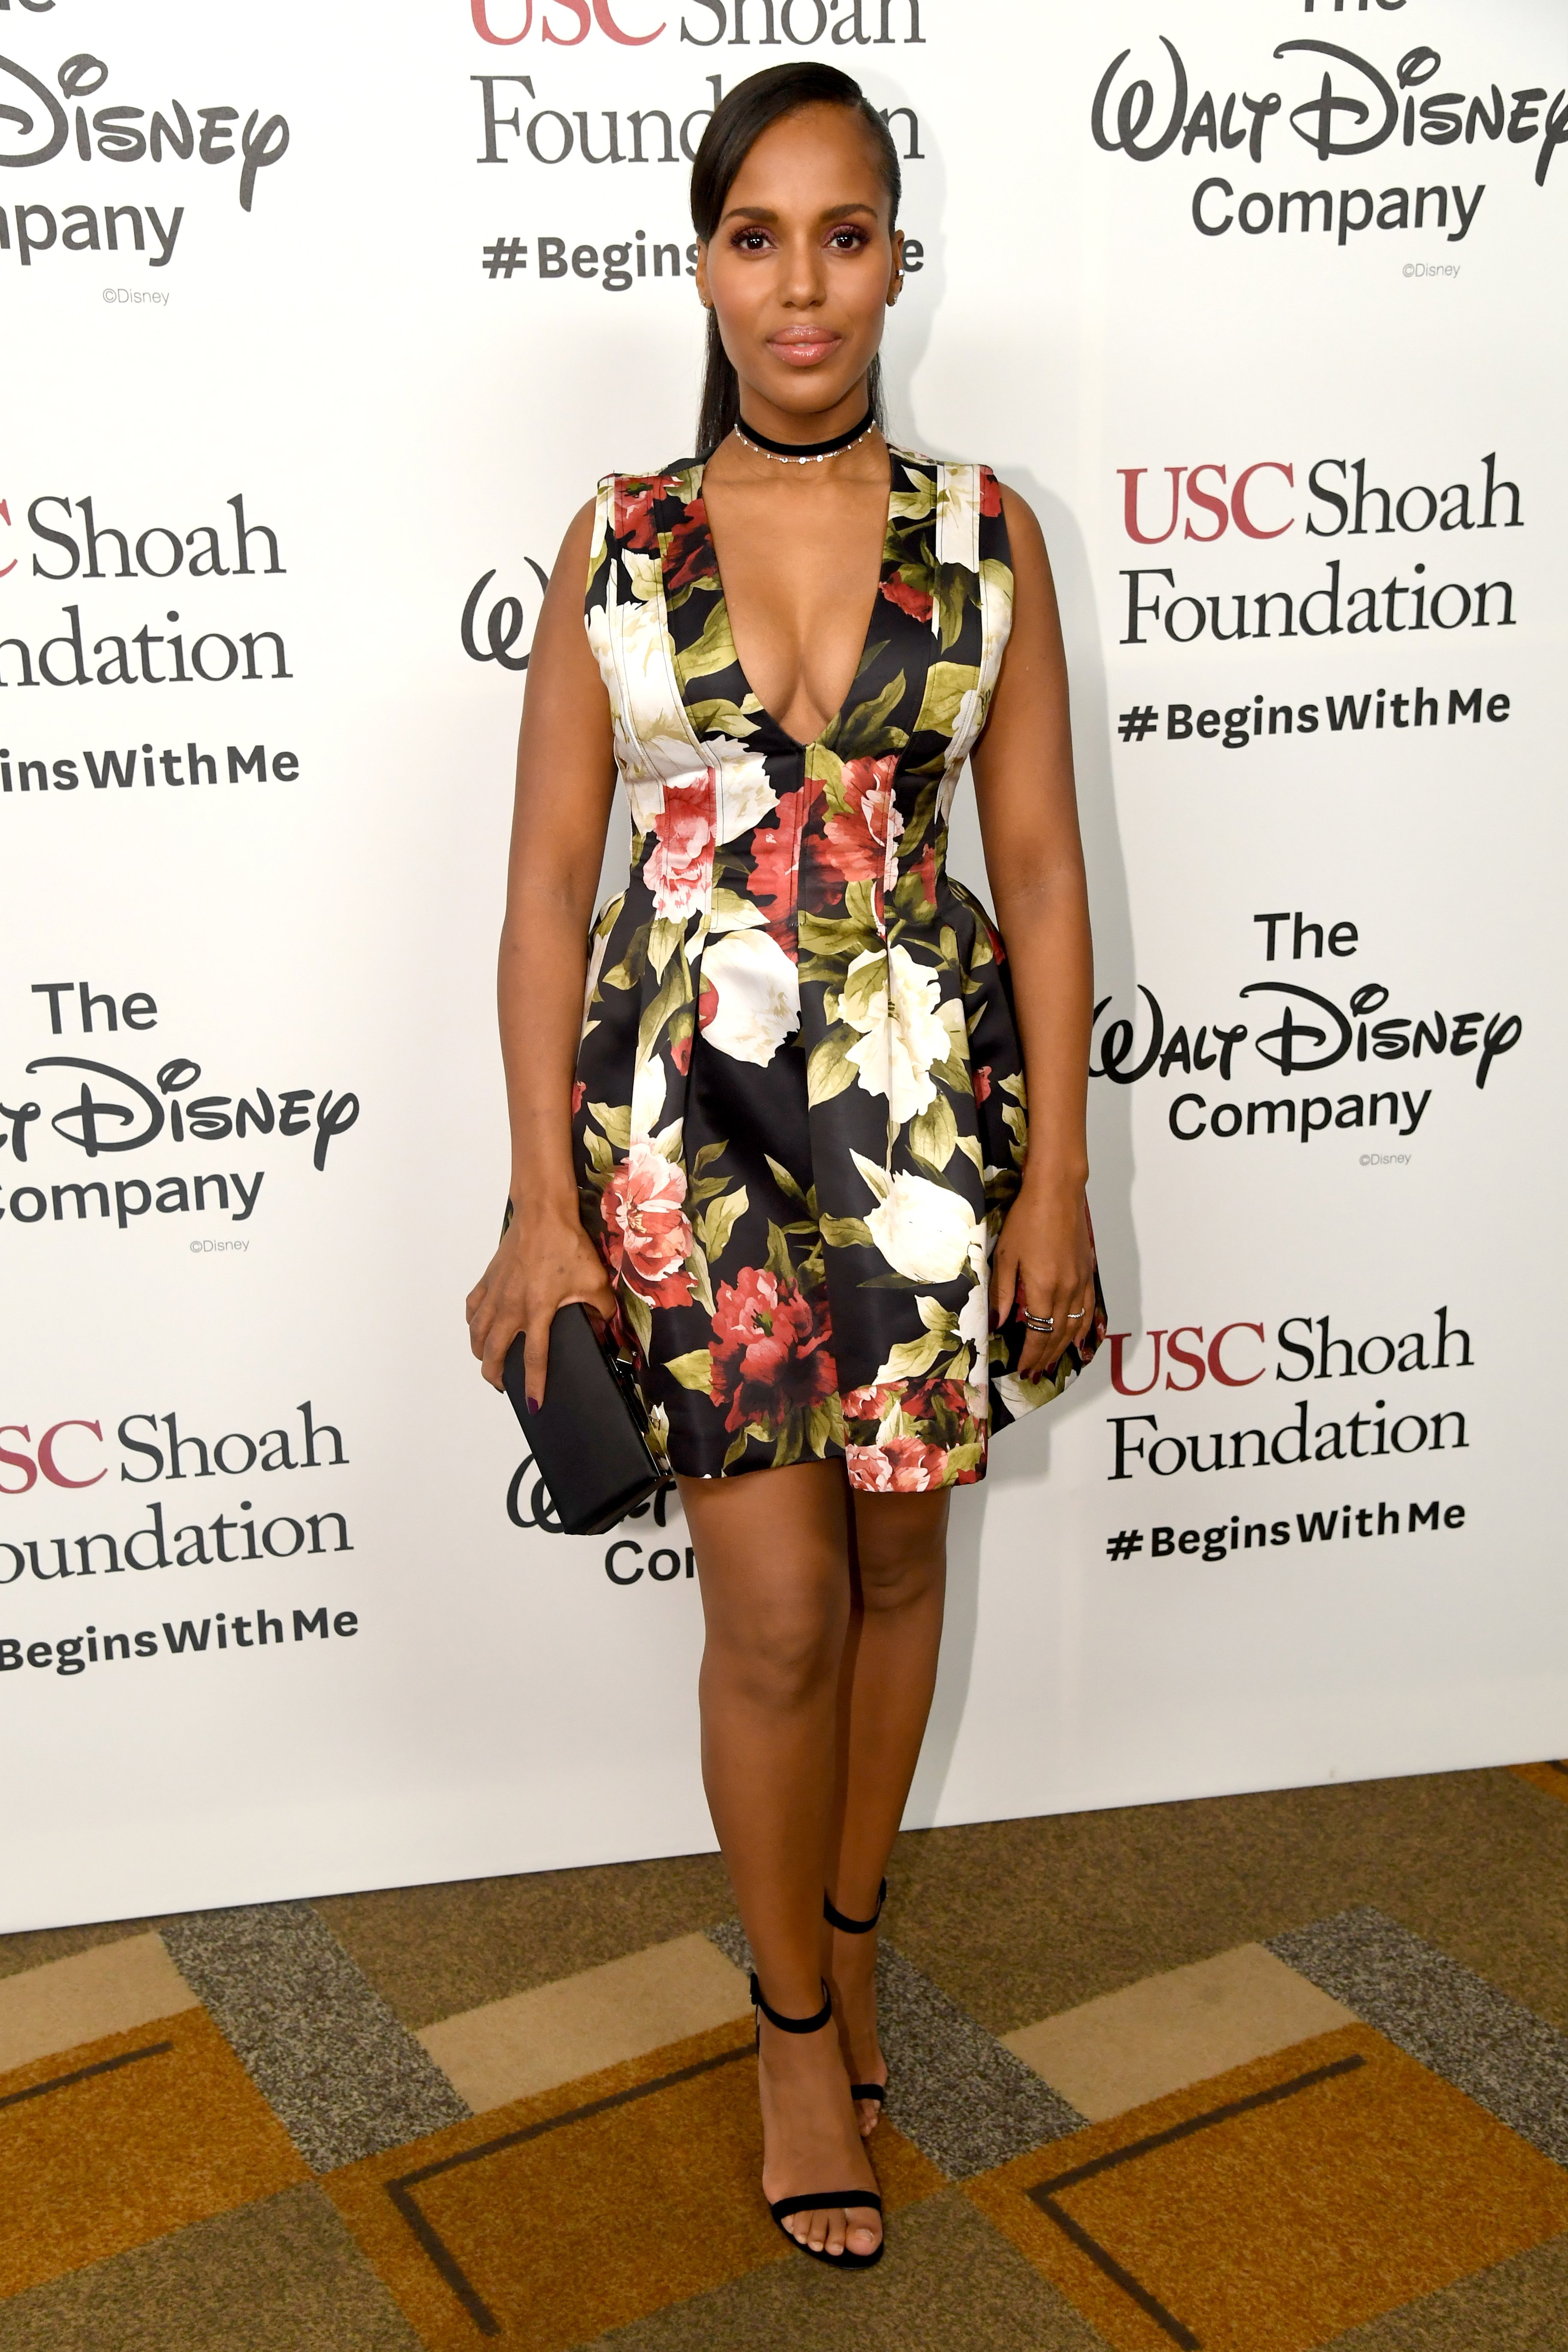 Kerry Washington attends Ambassadors for Humanity Gala Benefiting USC Shoah Foundation at The Ray Dolby Ballroom at Hollywood & Highland Center on December 8, 2016 in Hollywood